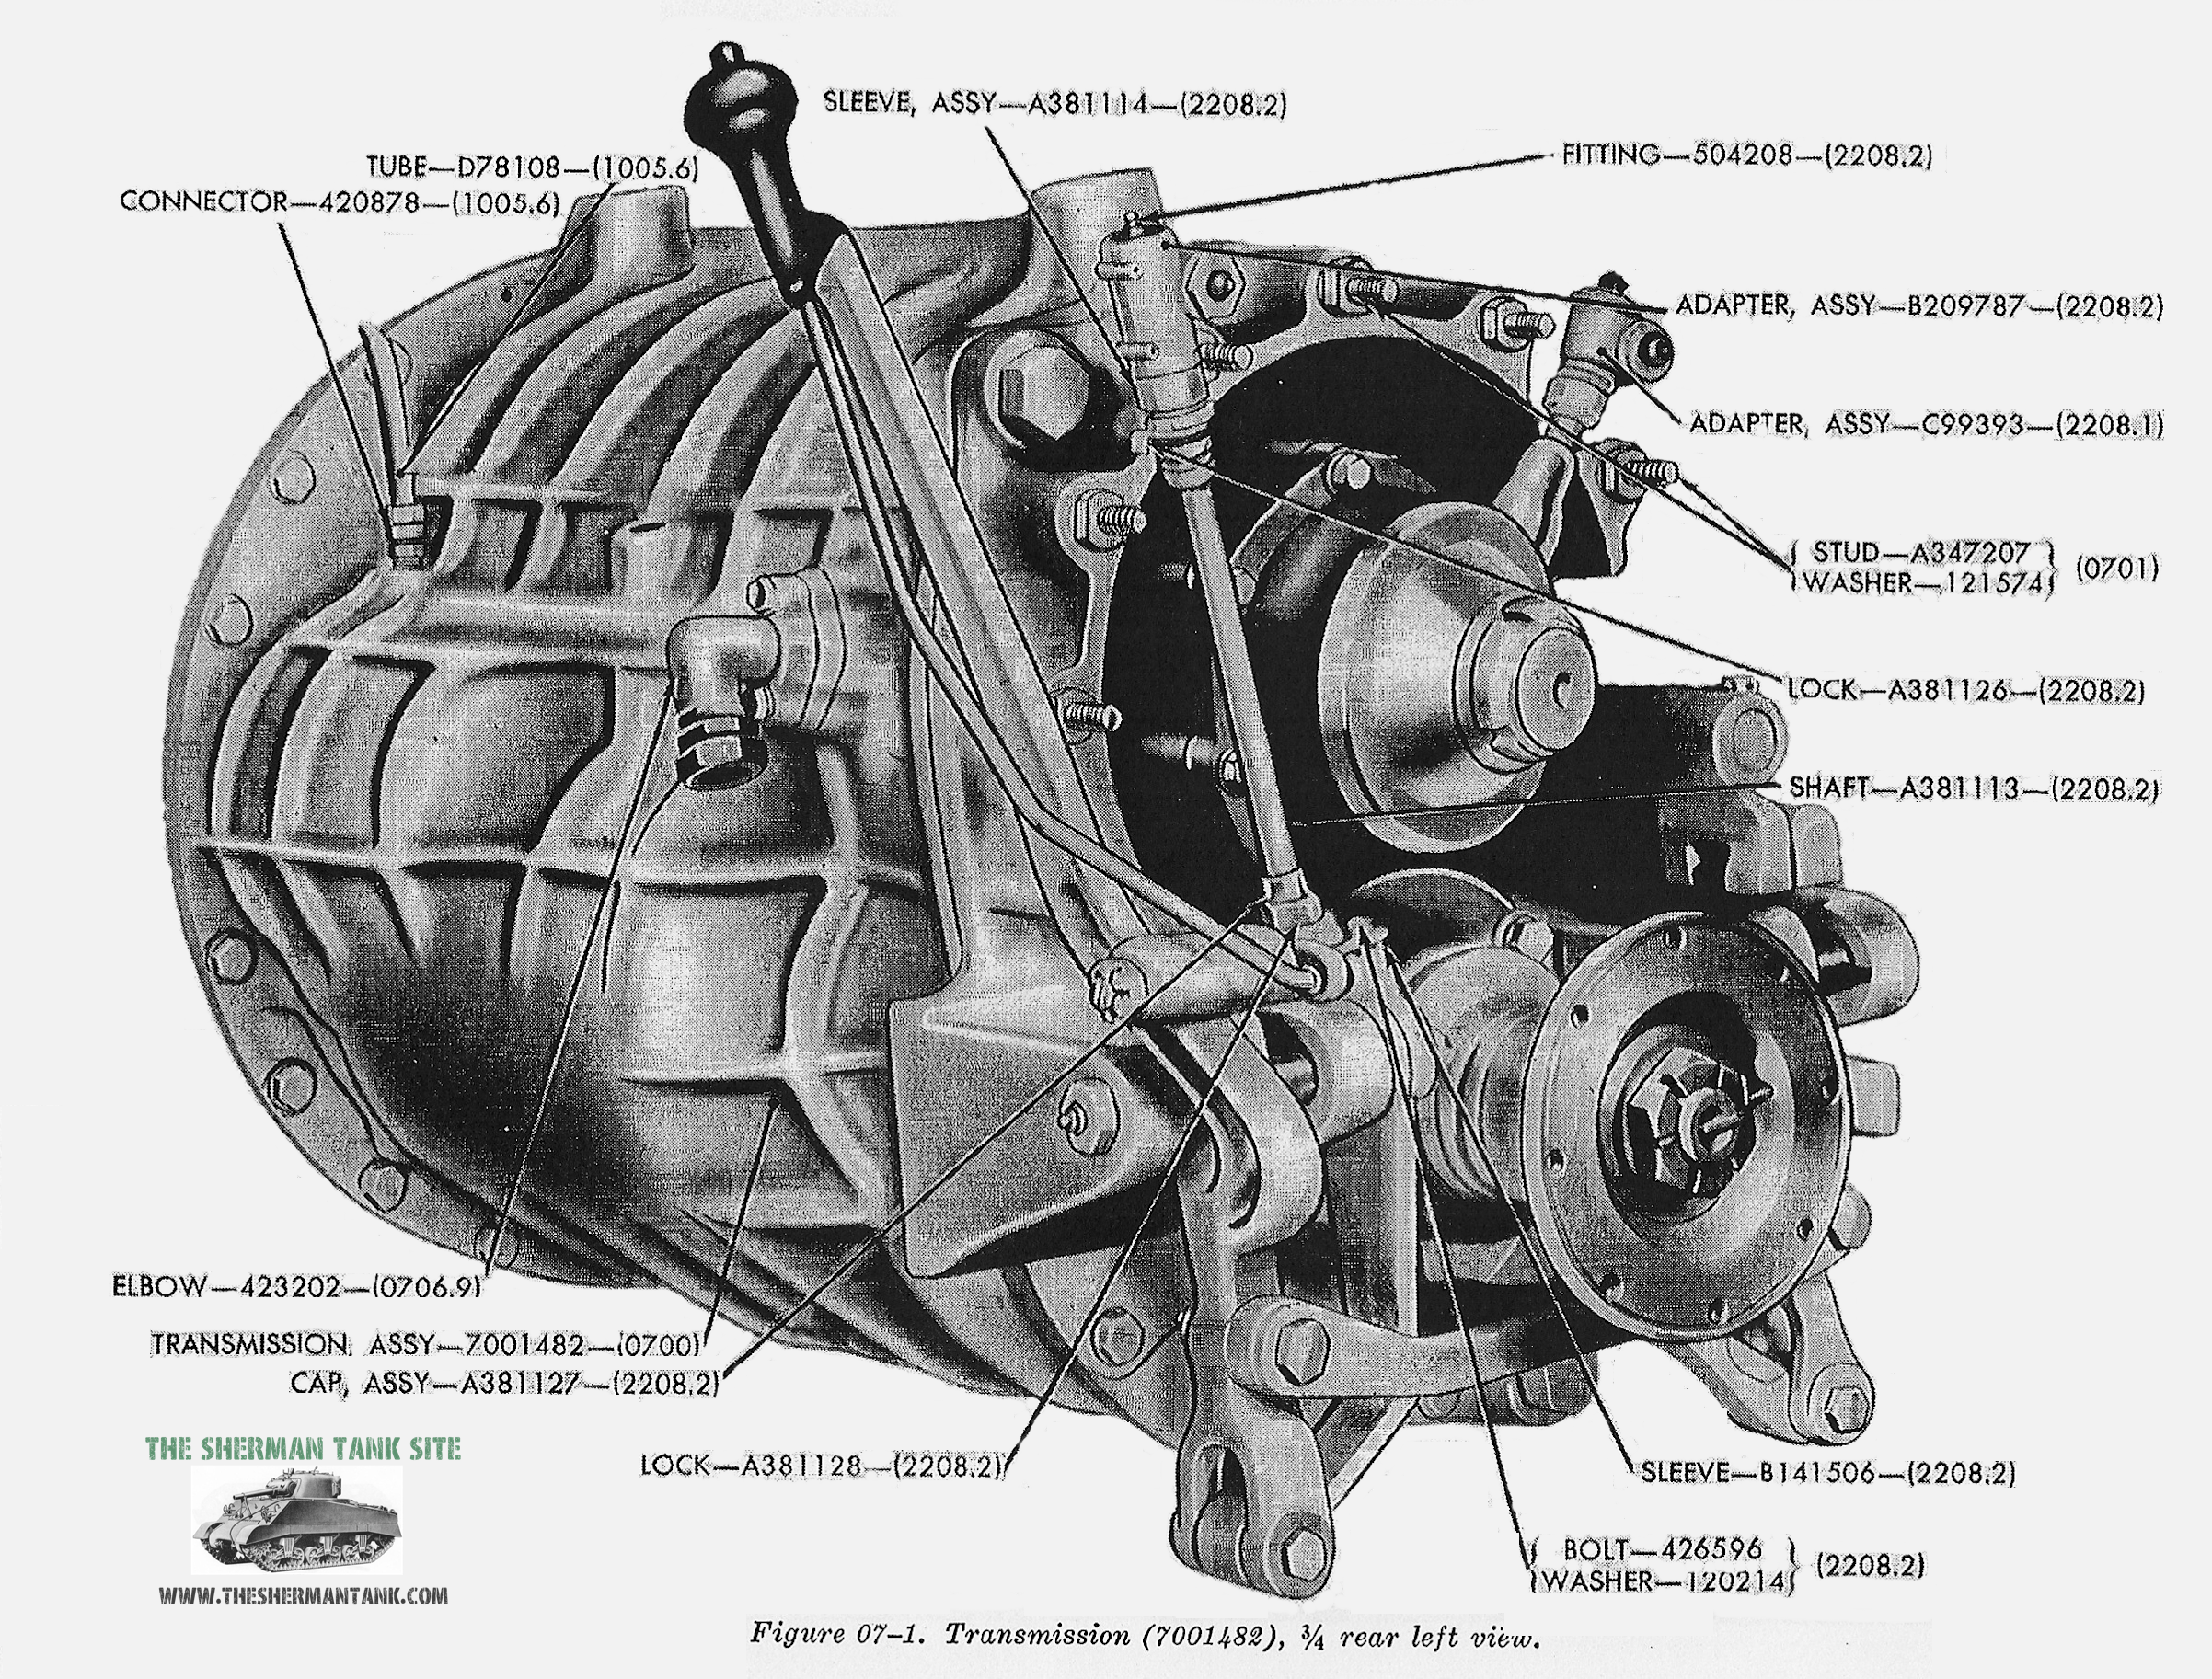 The Sherman Transmission A pretty robust and advanced